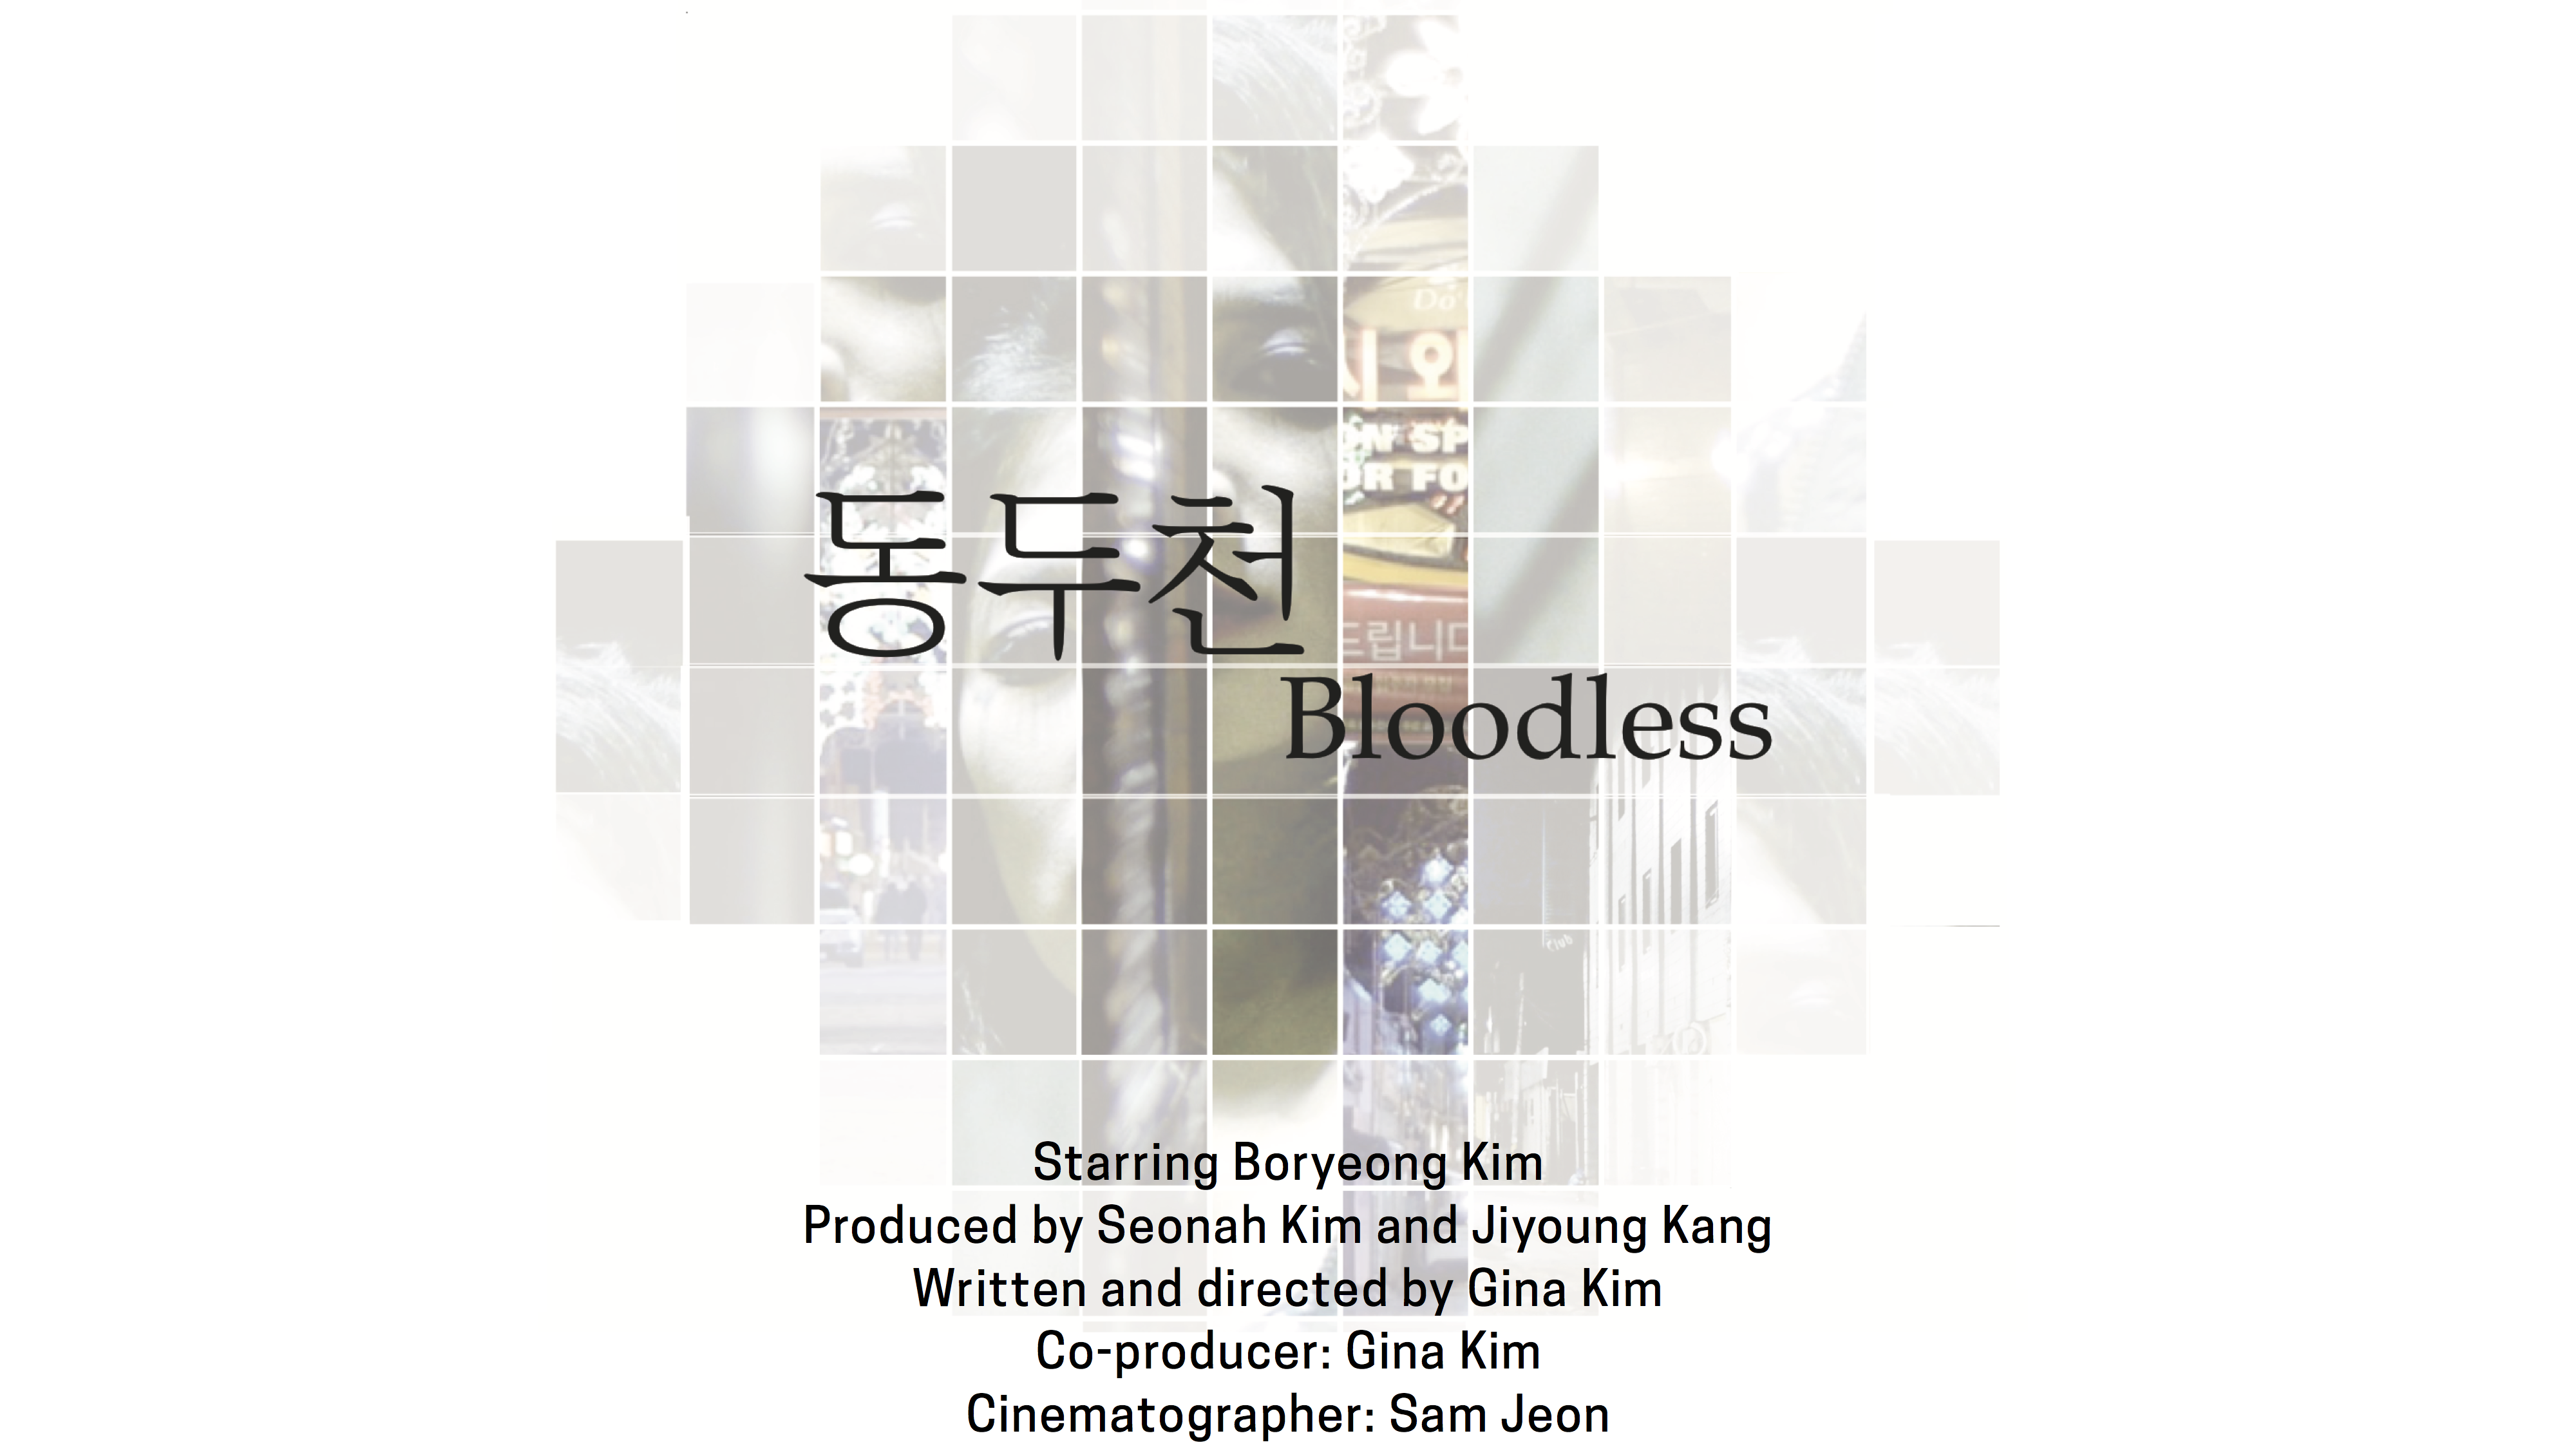 Bloodless credits